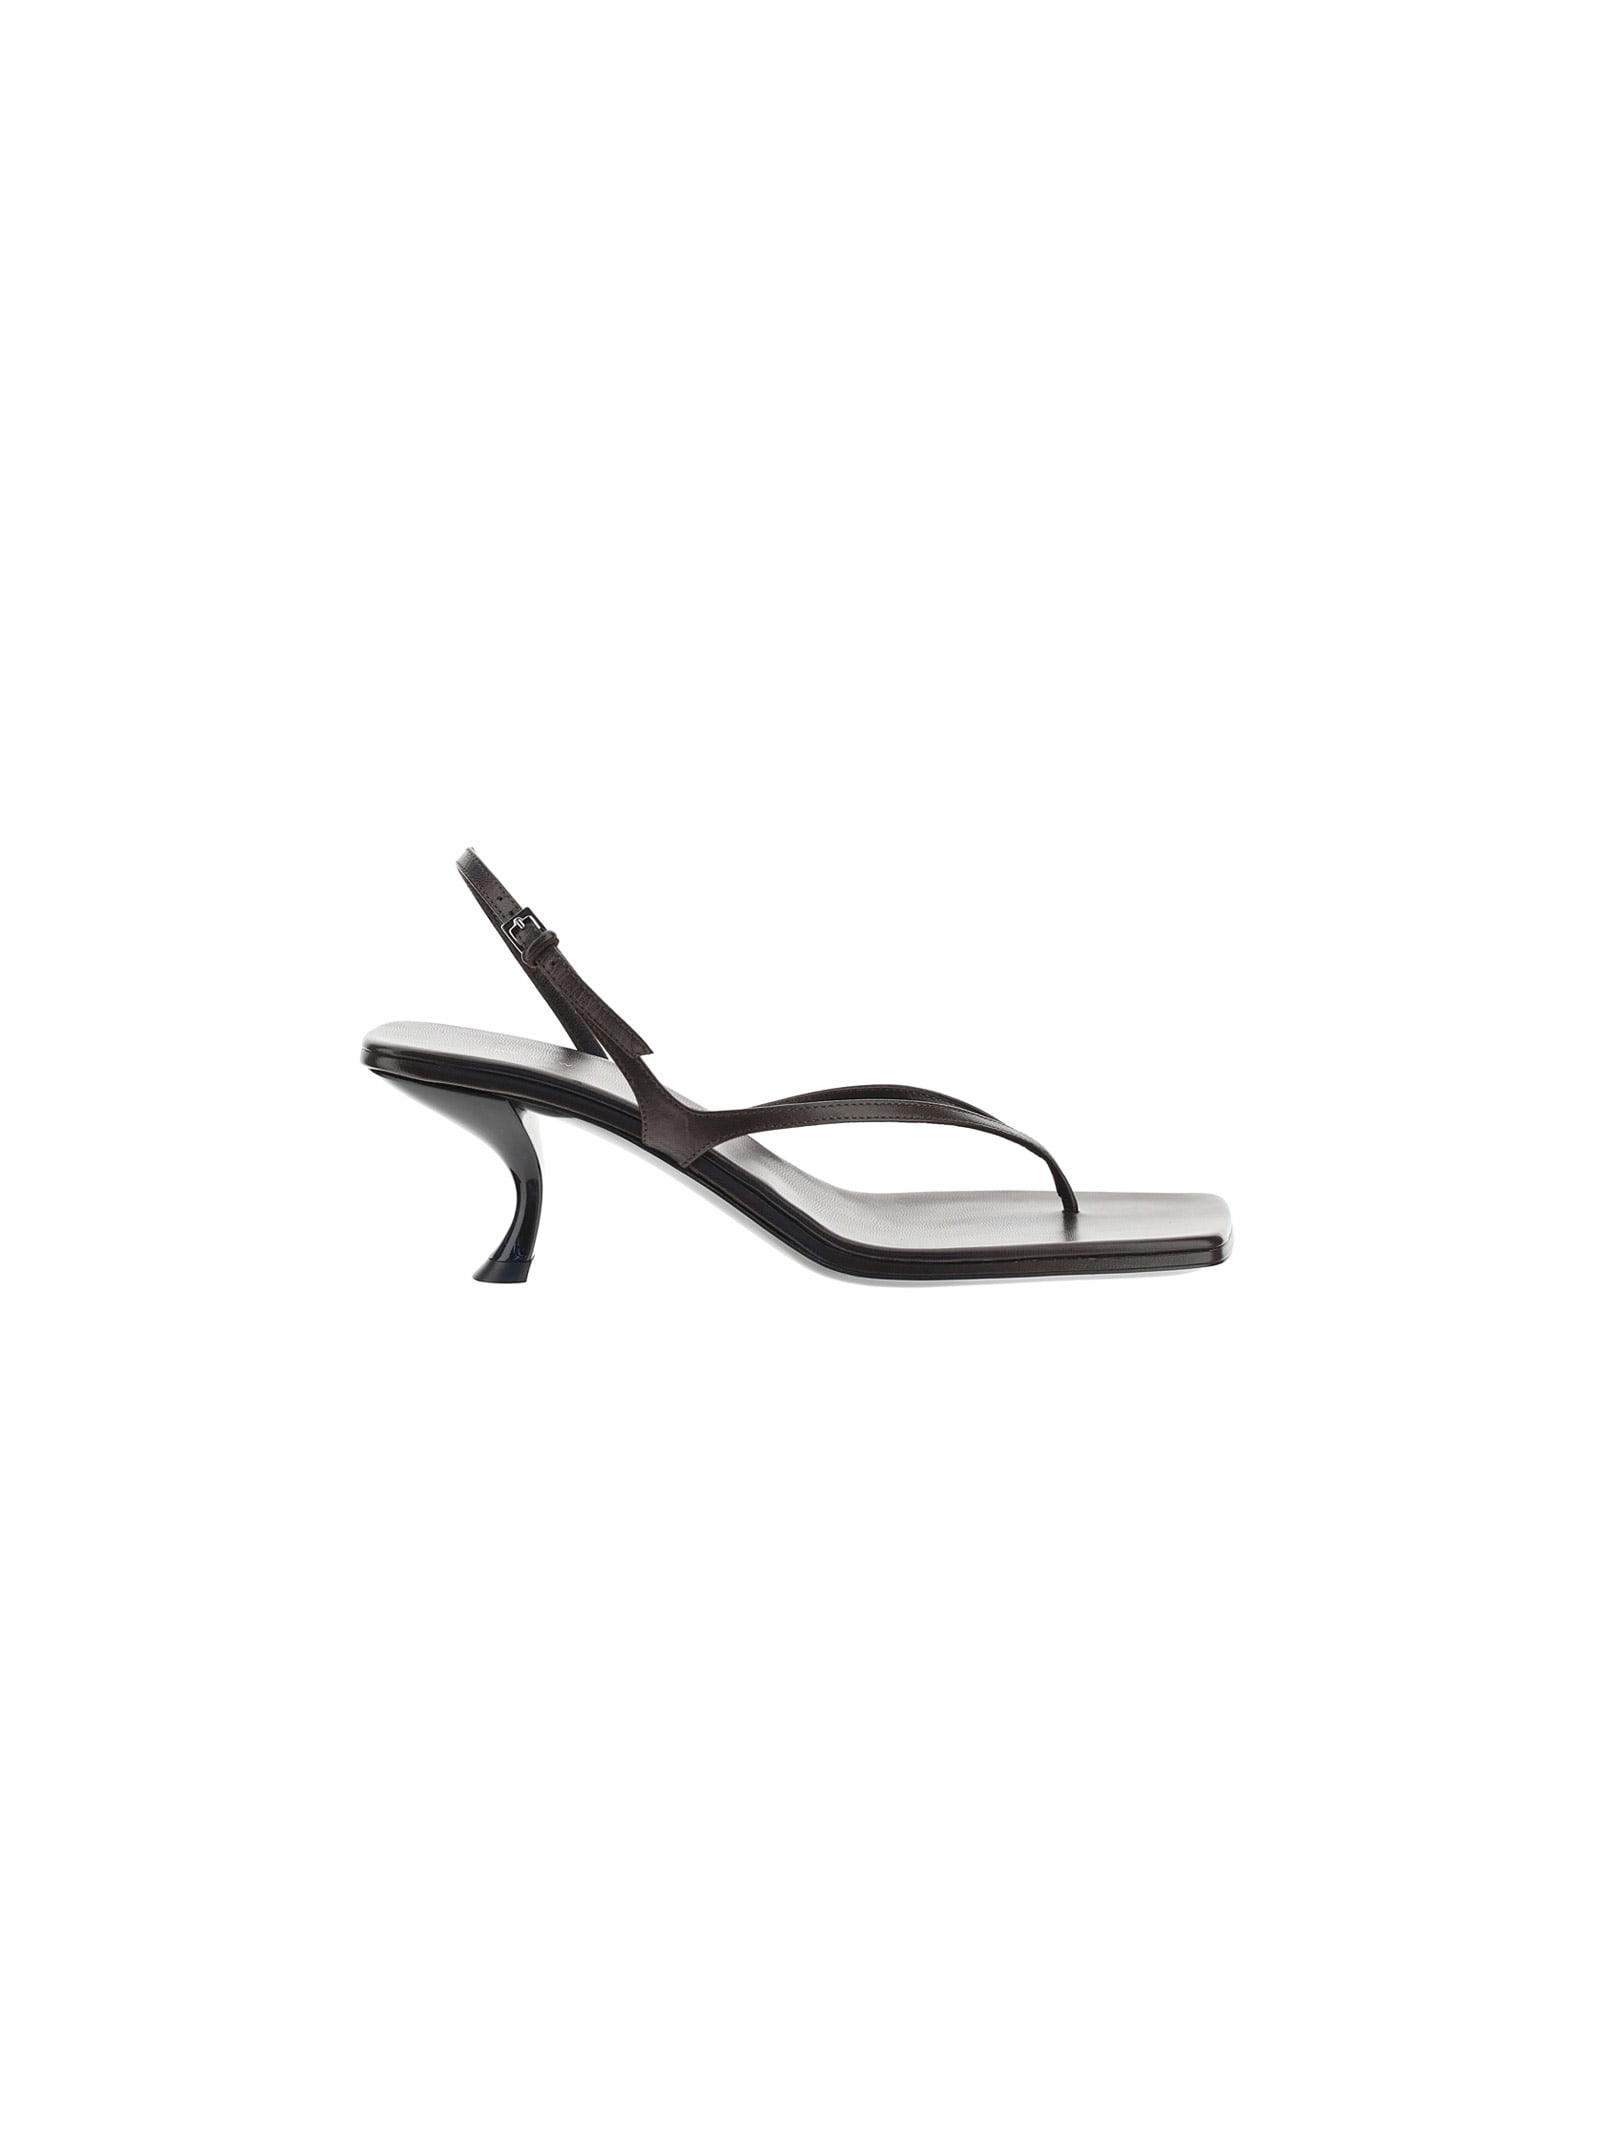 The Row Leathers CONSTANCE SANDALS